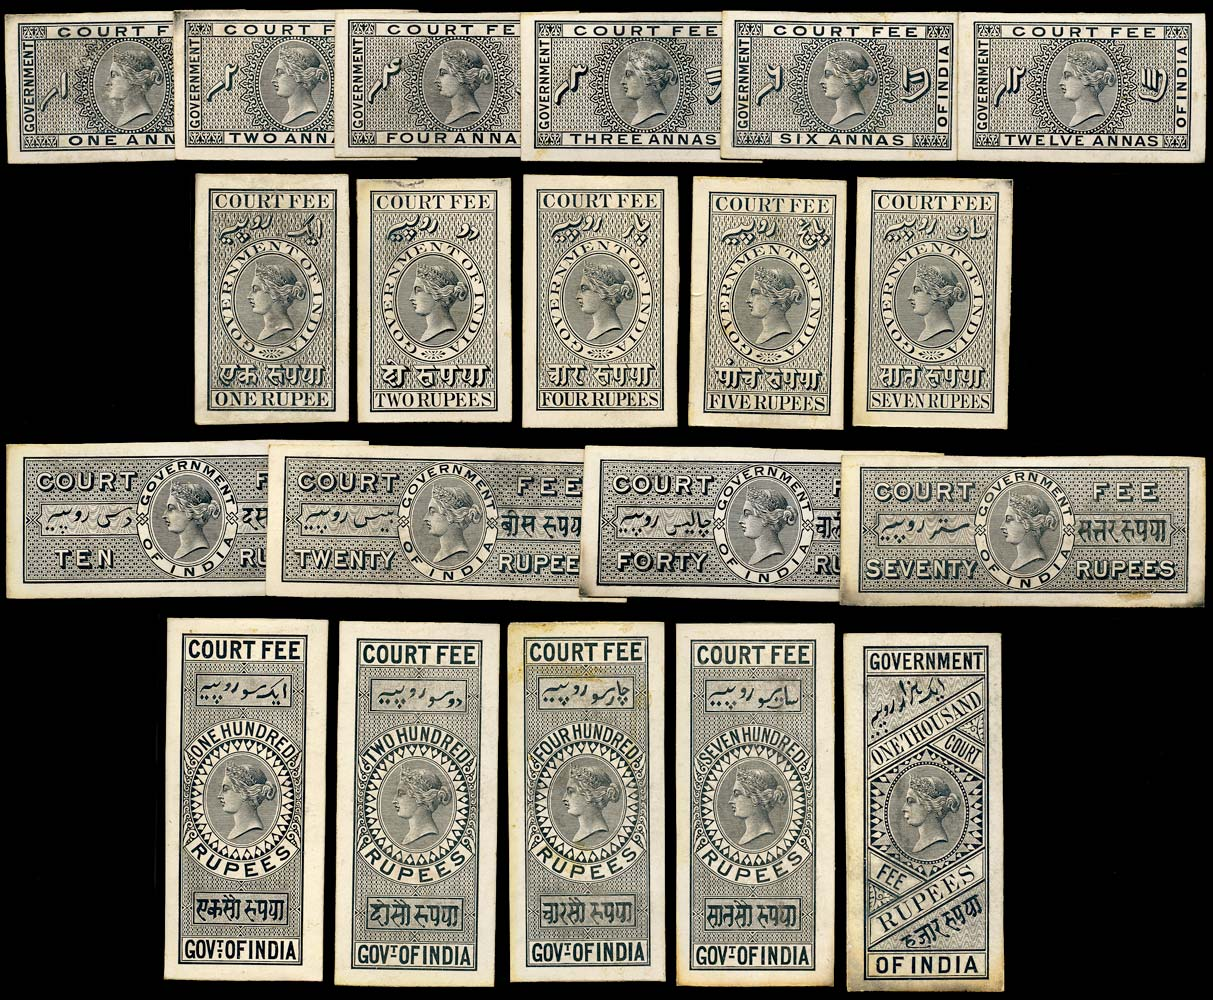 INDIA 1872 Revenue Court Fee Set of 20 Die Proofs